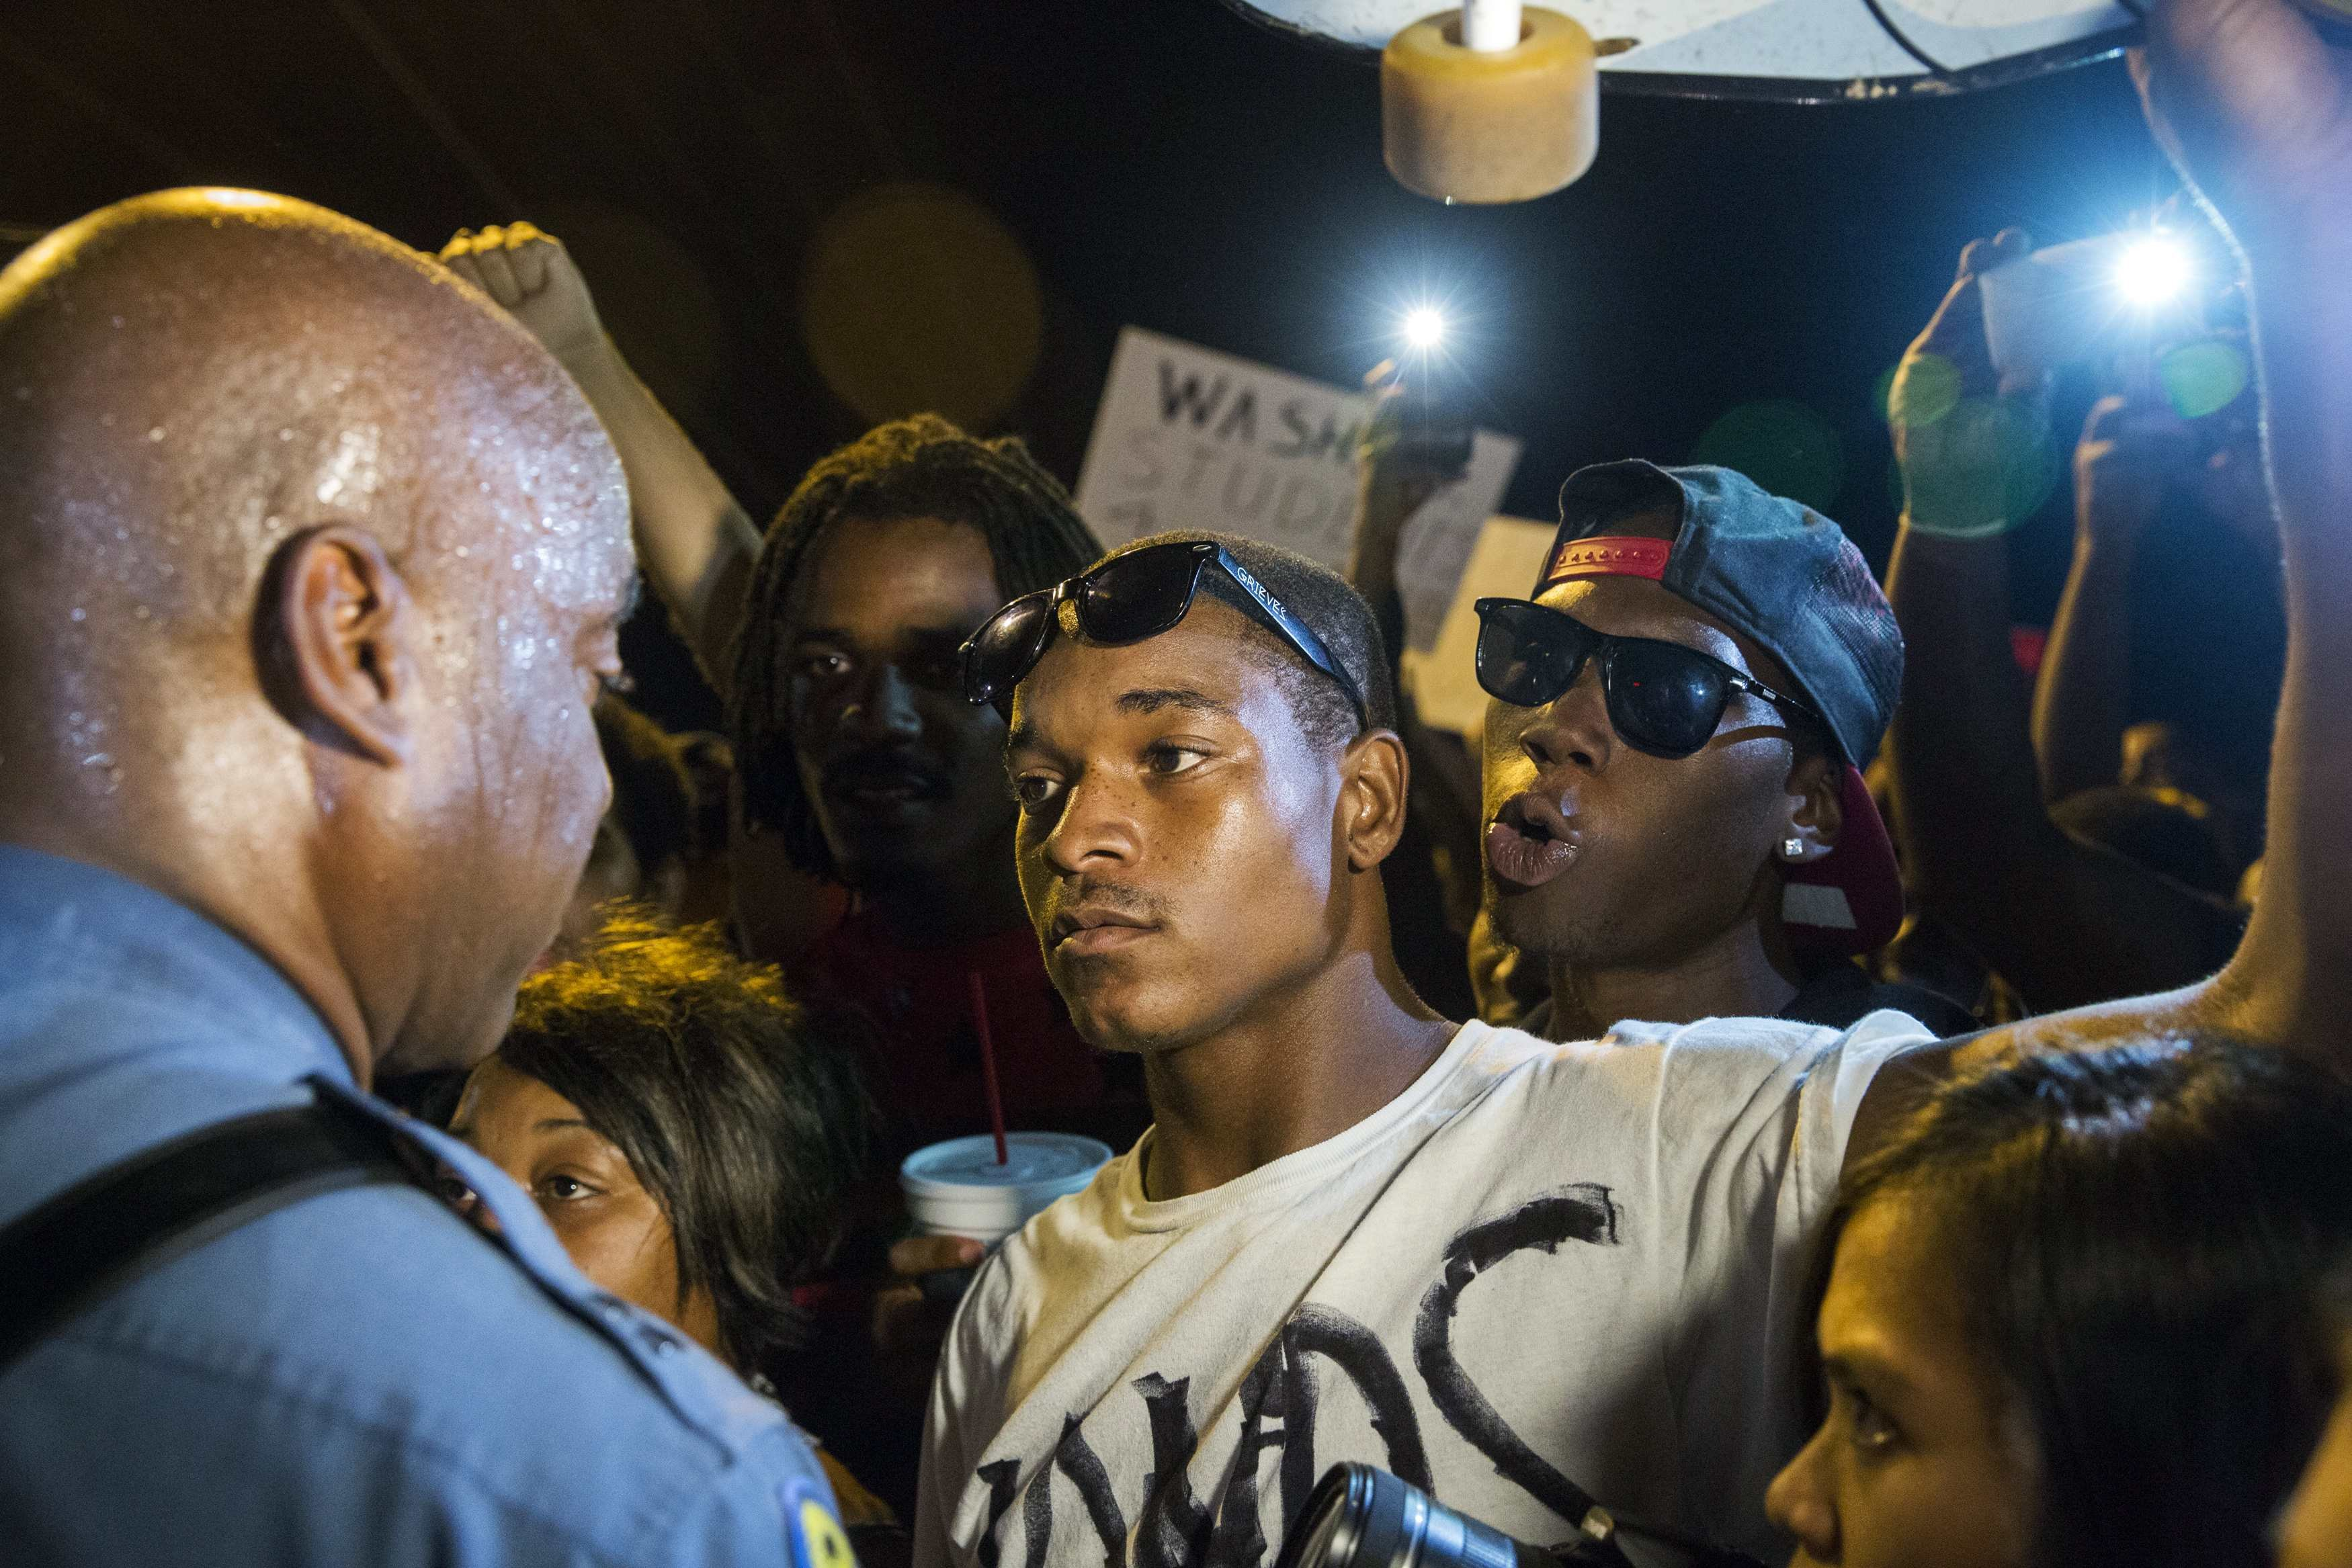 Missouri State Highway Patrol Captain Ron Johnson (L) speaks to protesters as he walks through a peaceful demonstration as communities continue to react to the shooting of Michael Brown in Ferguson, Mo. on Aug. 14, 2014.